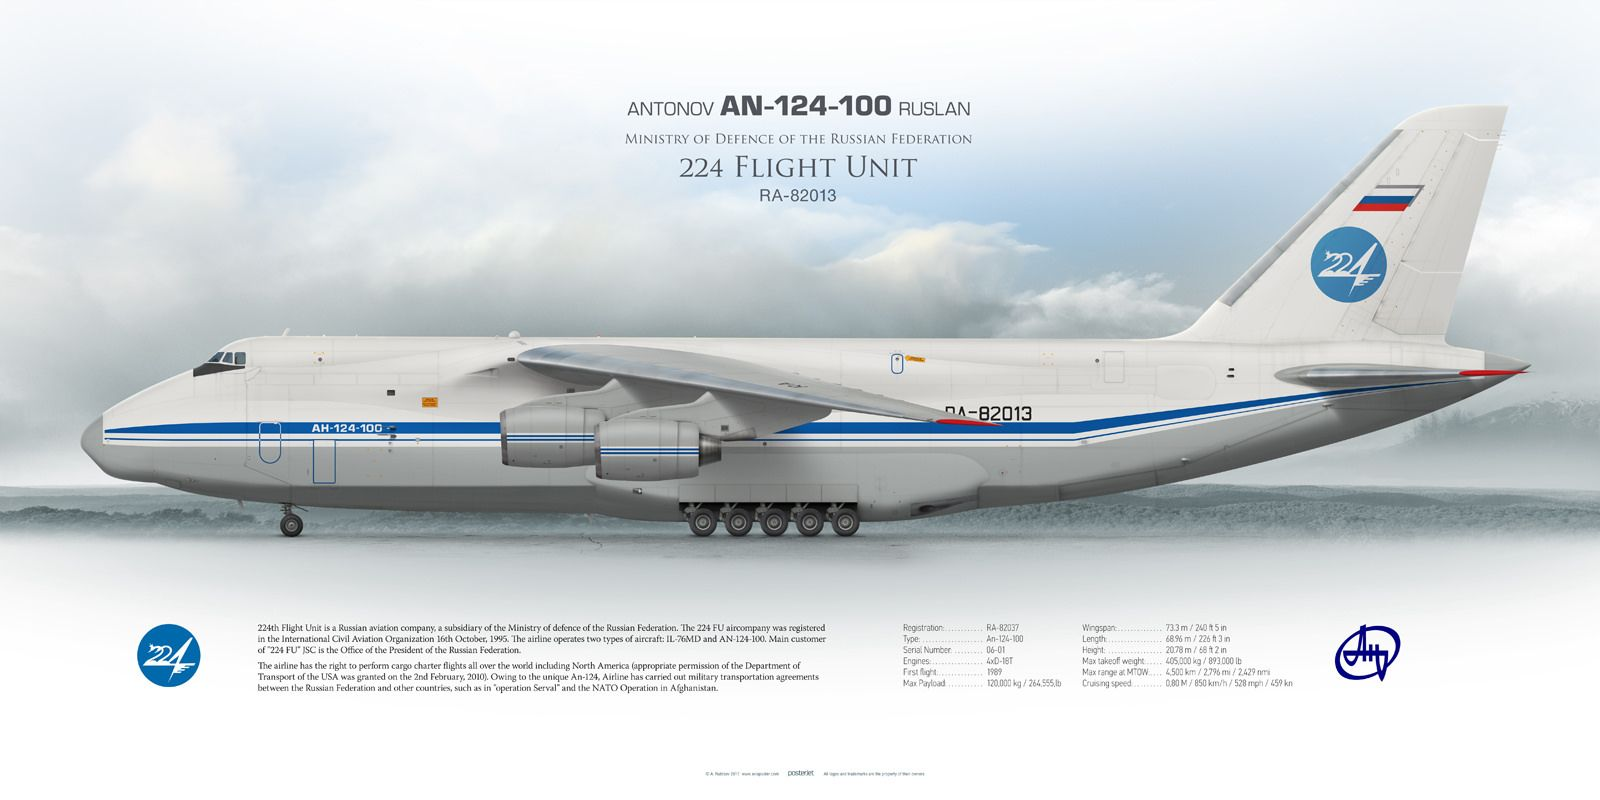 Antonov An-124-100 Ruslan Ministry of Defence of the Russian Federation 224 Flight Unit RA-82013 | www.aviaposter.com | Airliners profile print | #airliners #aviation #jetliner #airplane #pilot #avia #airline